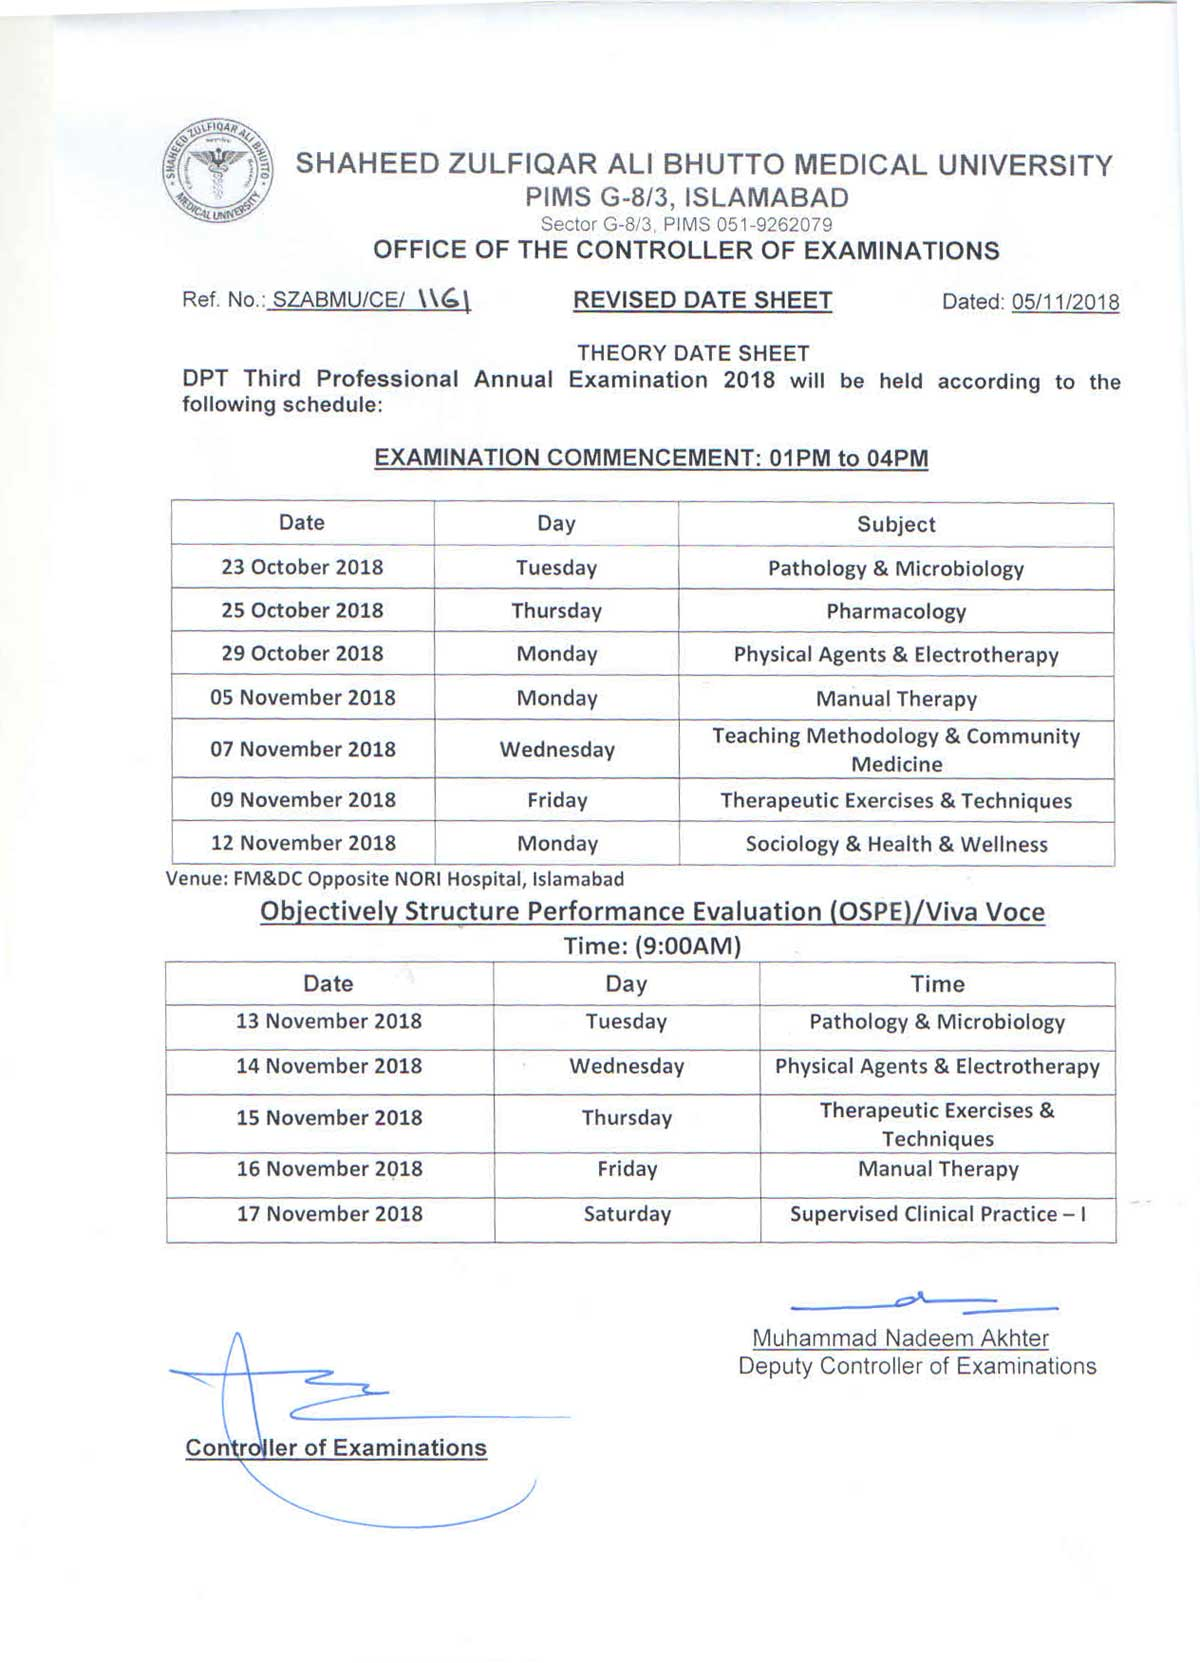 Revised Date Sheets for DPT Annual Examination 2018